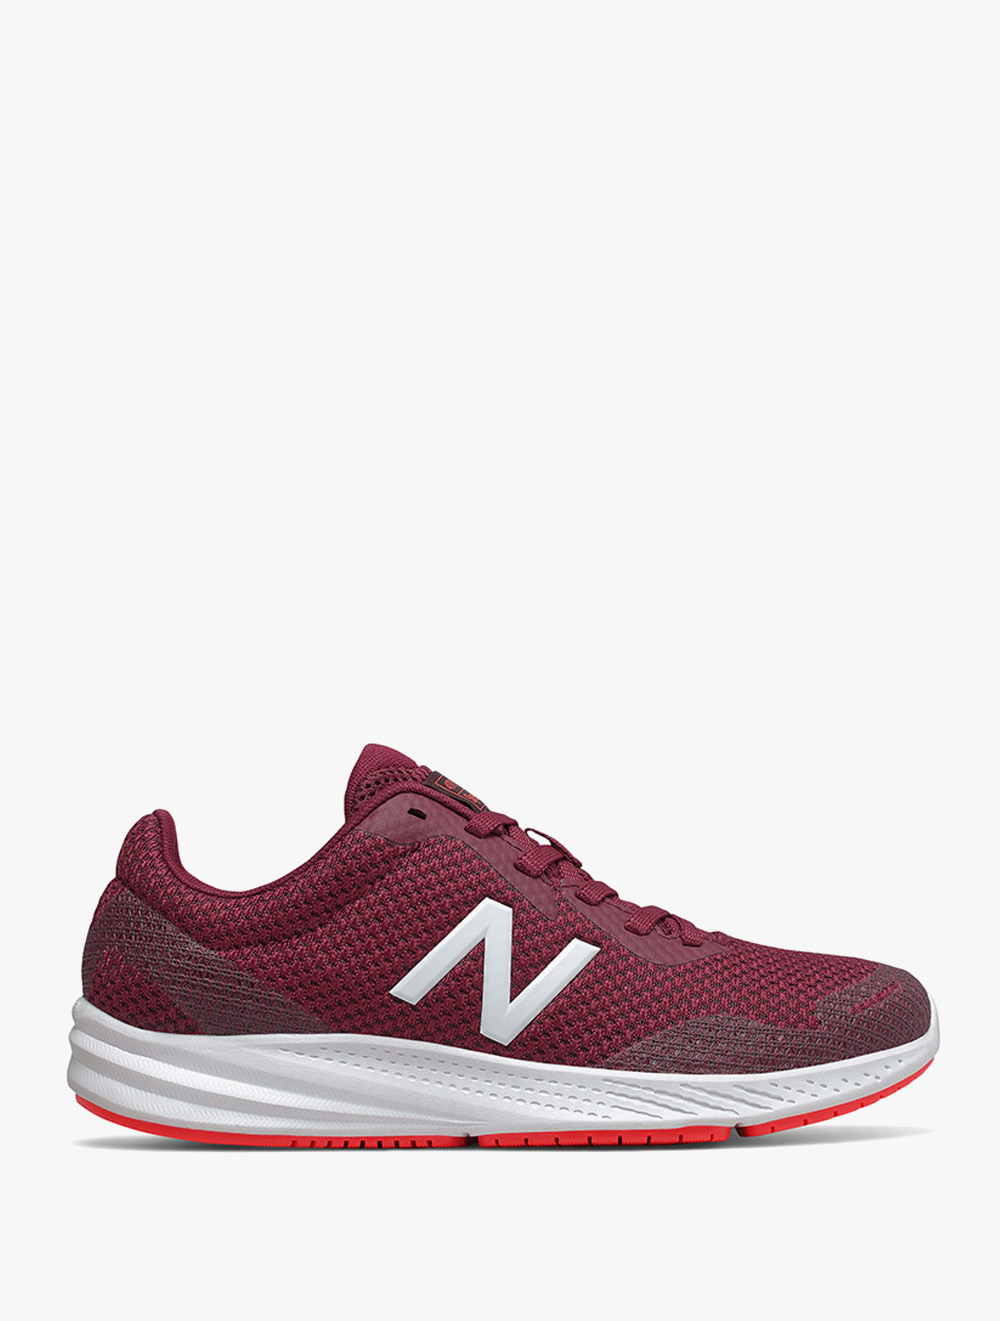 Buy Sports Shoes From New Balance in Indonesia on